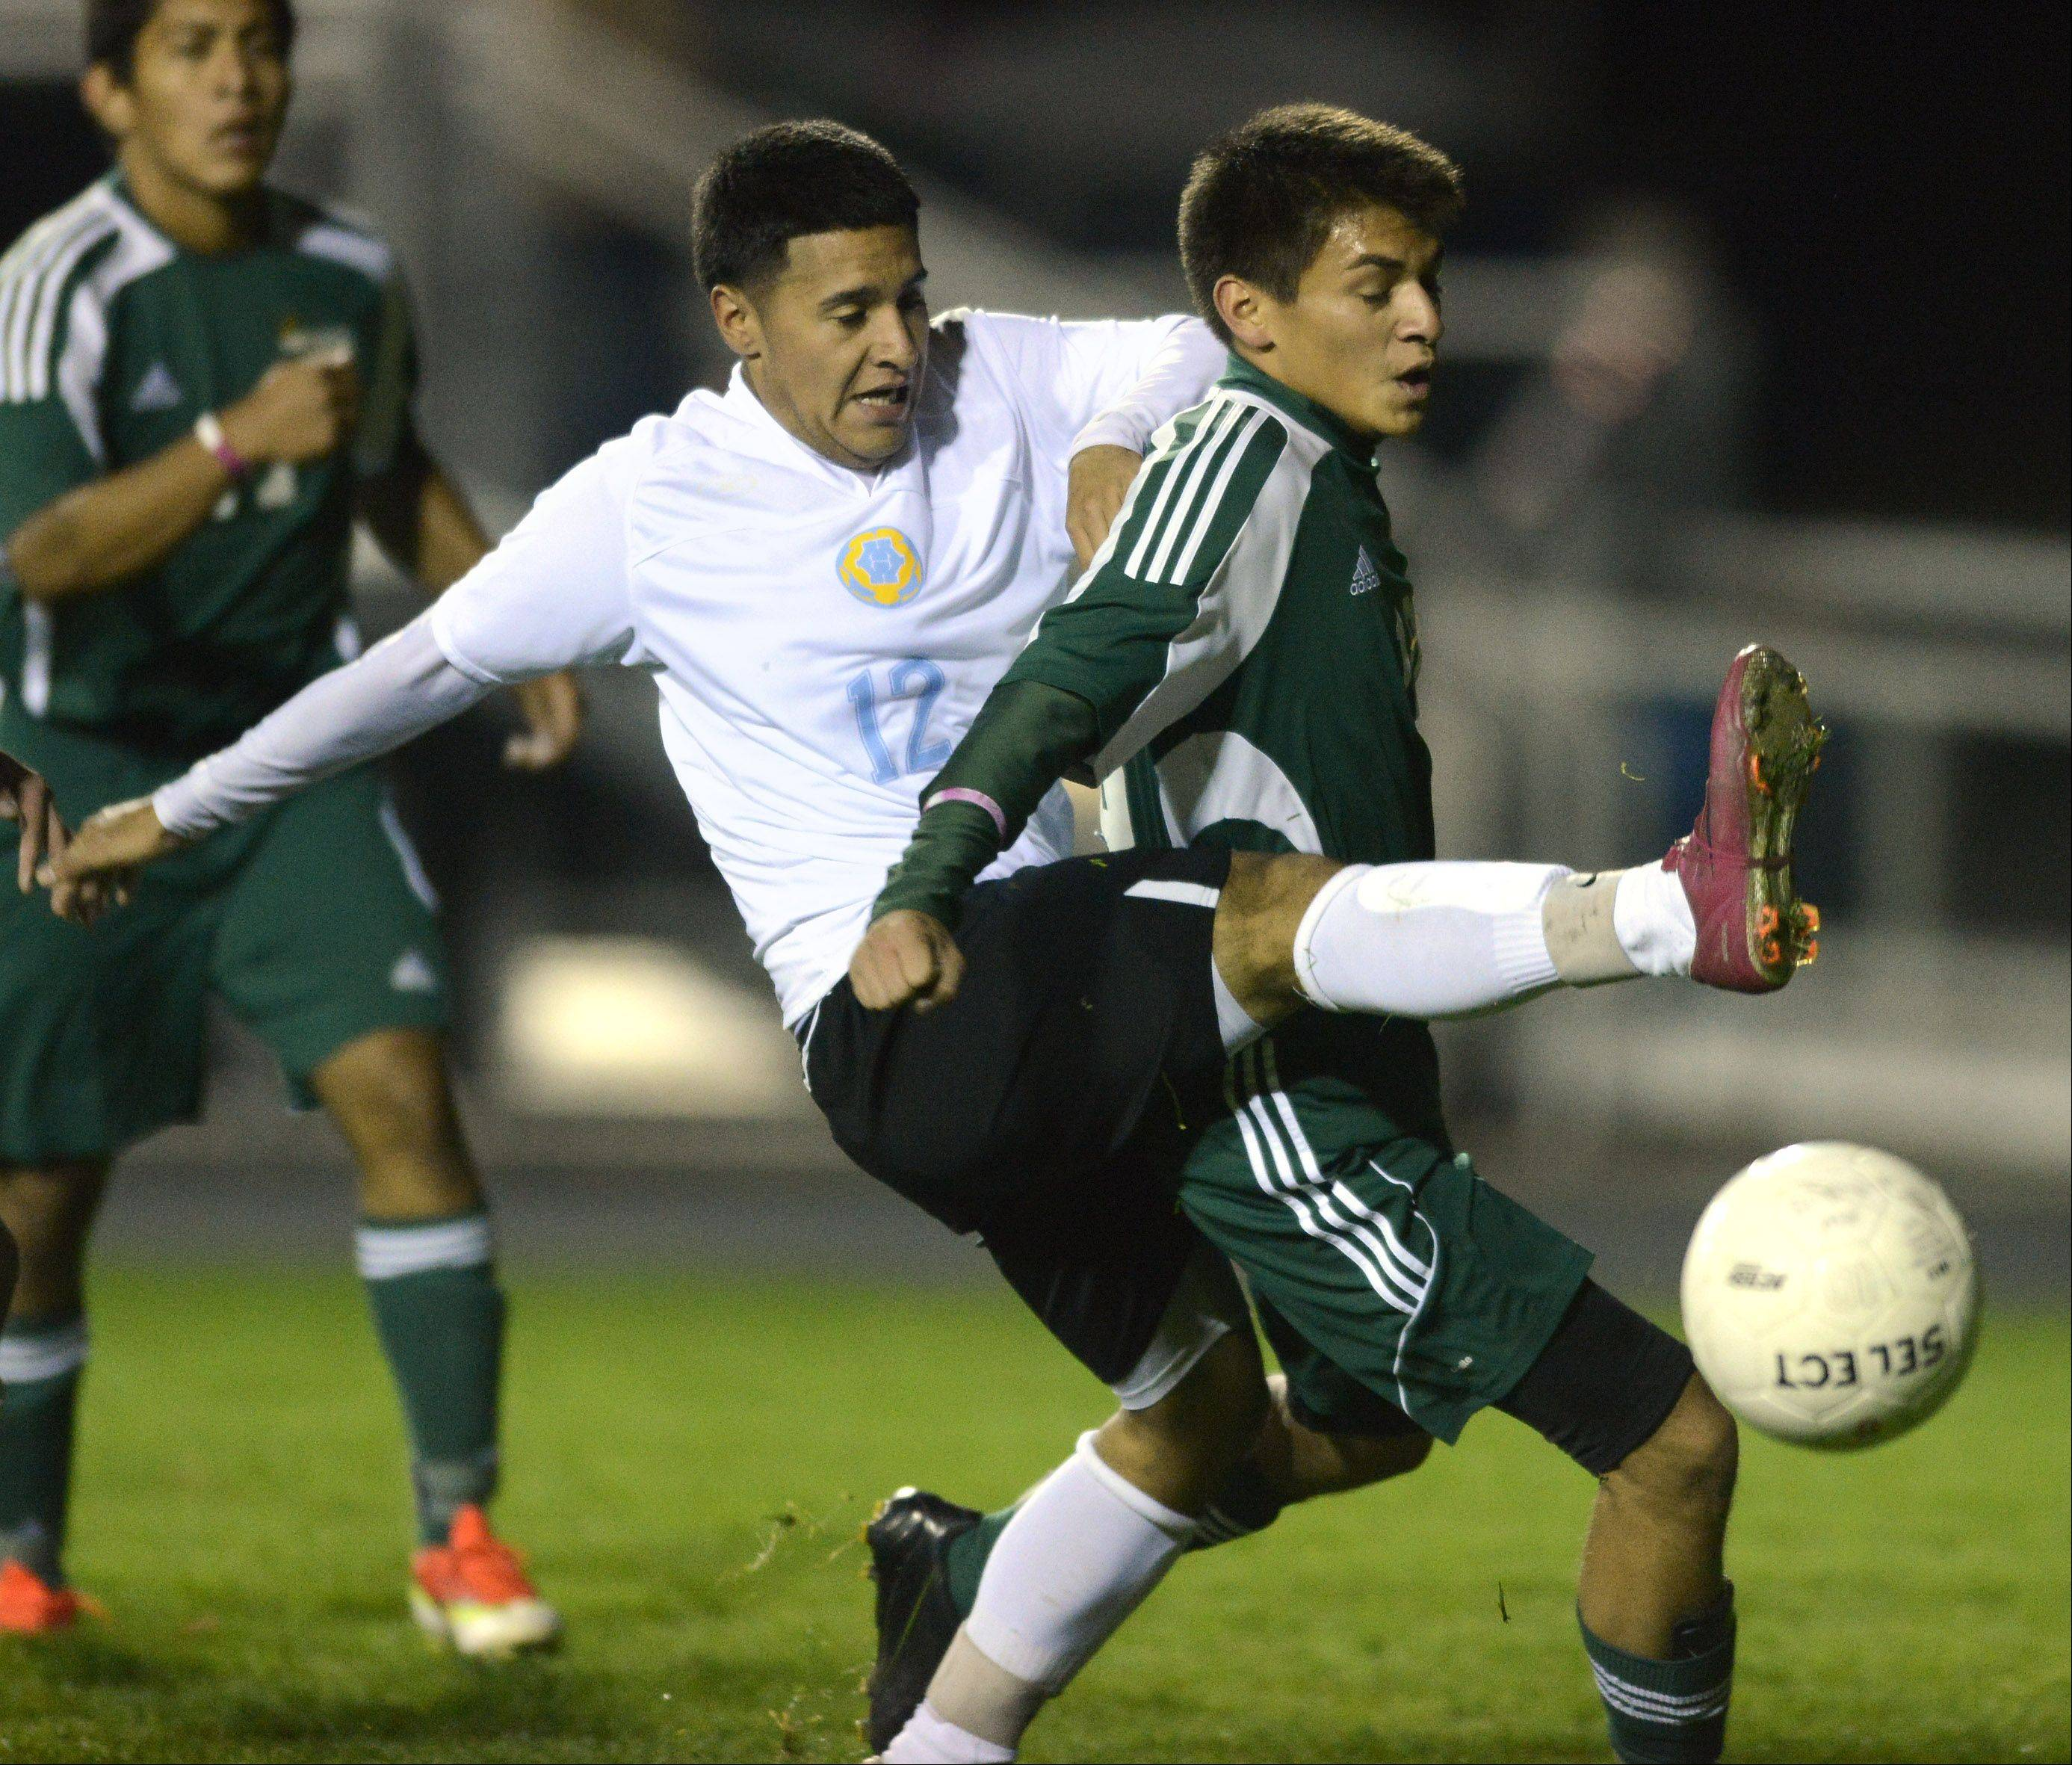 Maine West's Noe Moreno, left, gets tangled up with St. Patrick's Eric Rodriguez during Wednesday's game in Des Plaines.